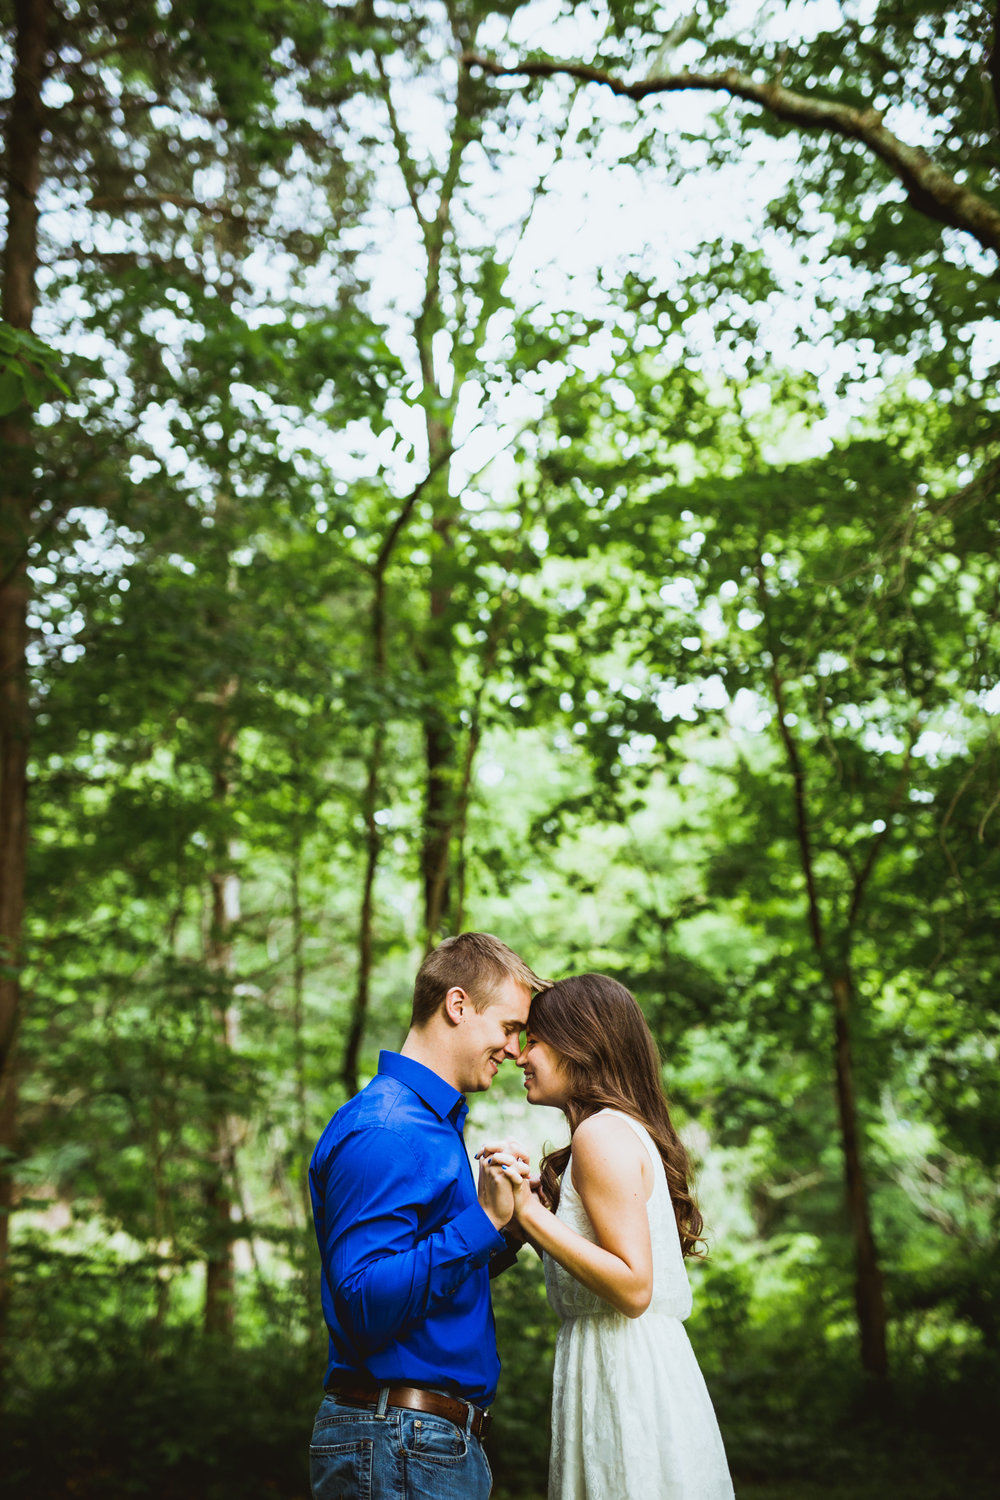 Todd-Hunt Engagement-38.jpg